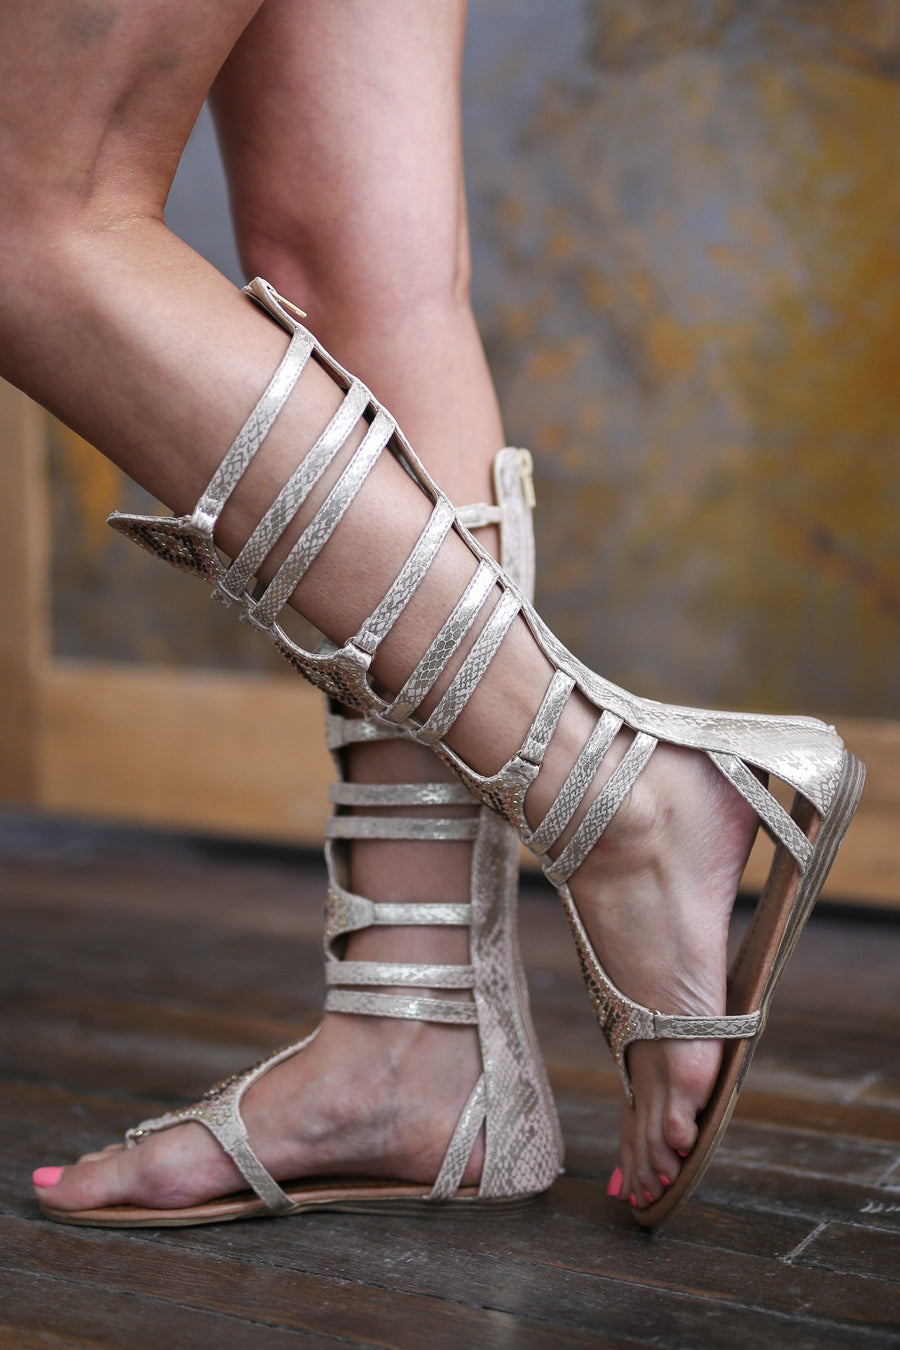 Making My Way To You Gladiator Sandals - Beige studded gladiator sandals, front, Closet Candy Boutique